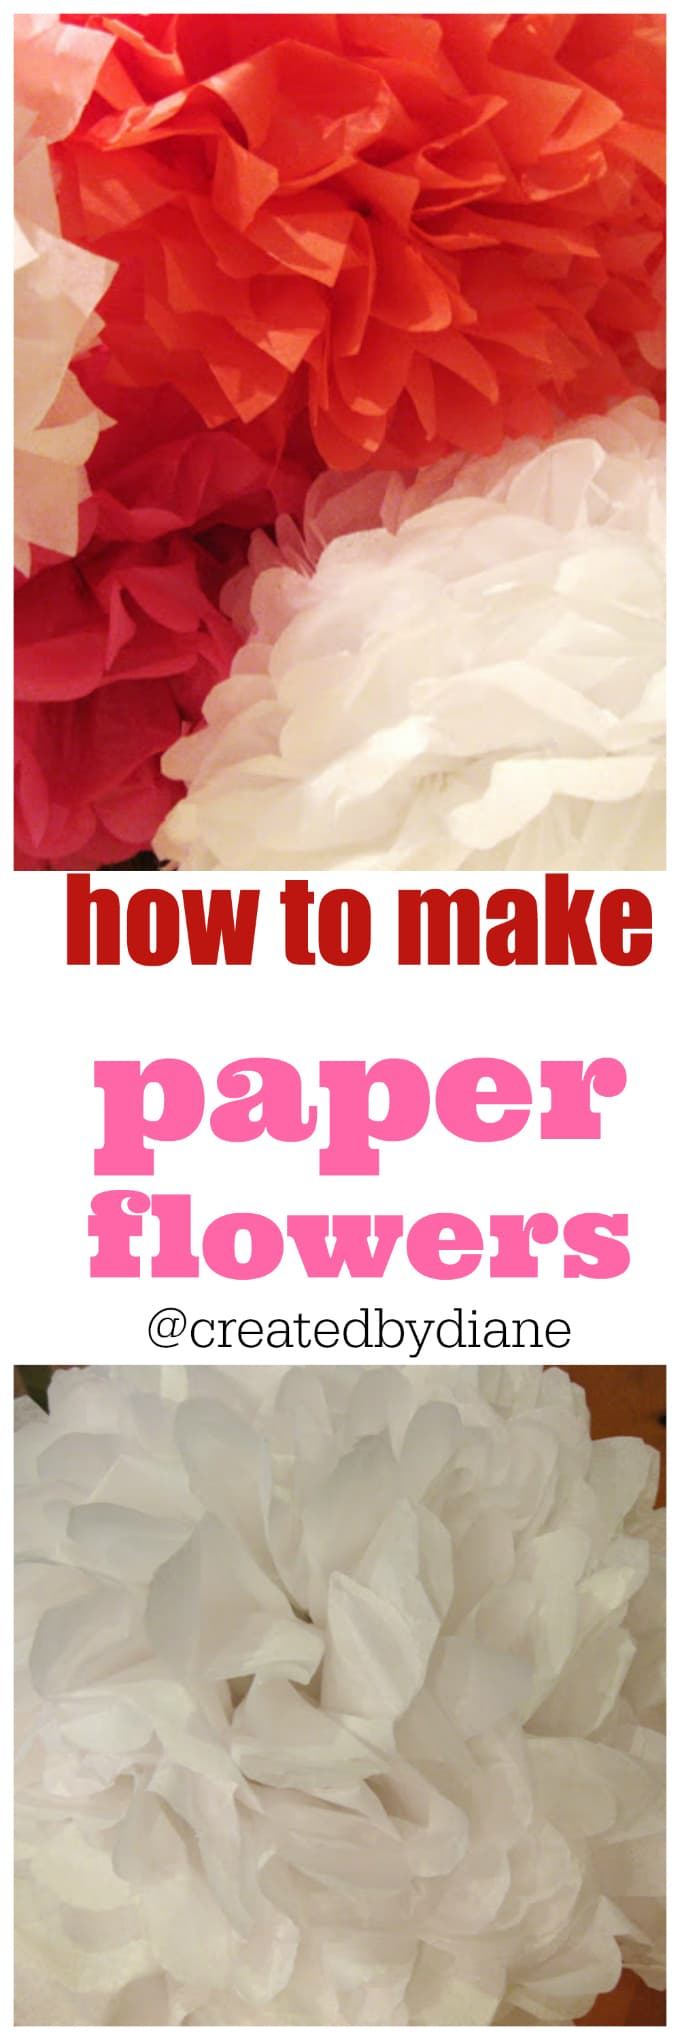 how to make paper flowers from @createdbydiane